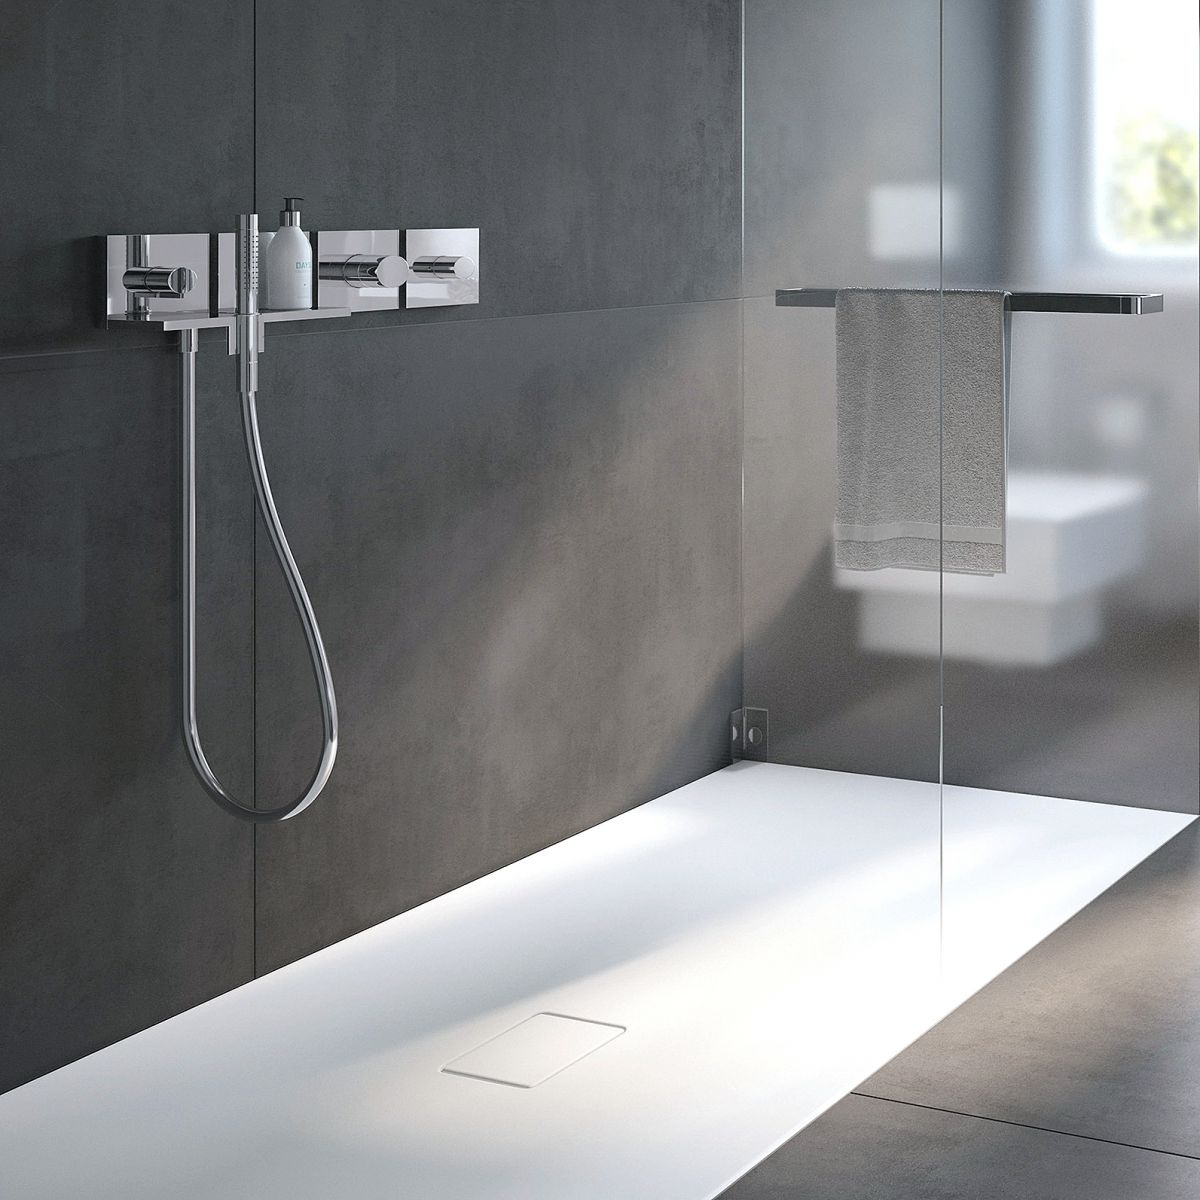 Conoflat shower tray 2 way shower mixer